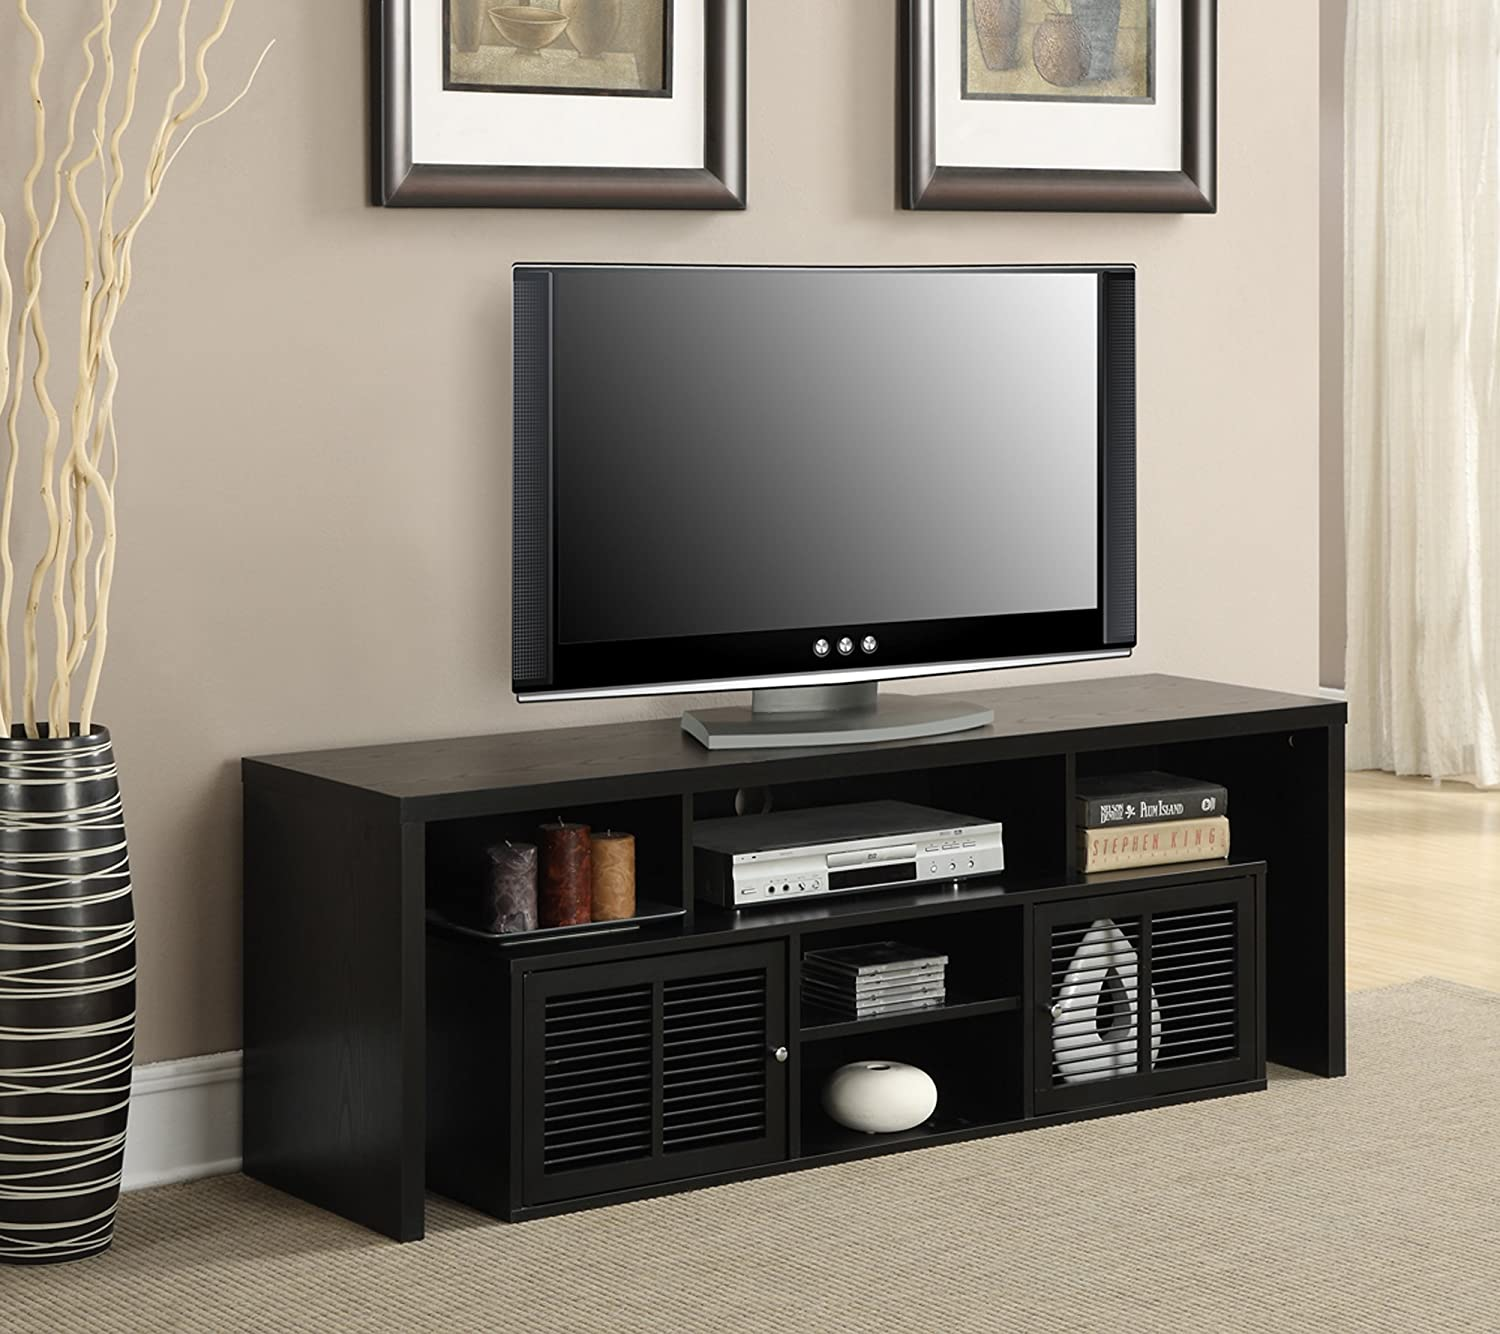 Convenience Concepts Designs2Go Modern Lexington 60-Inch TV Stand, Black